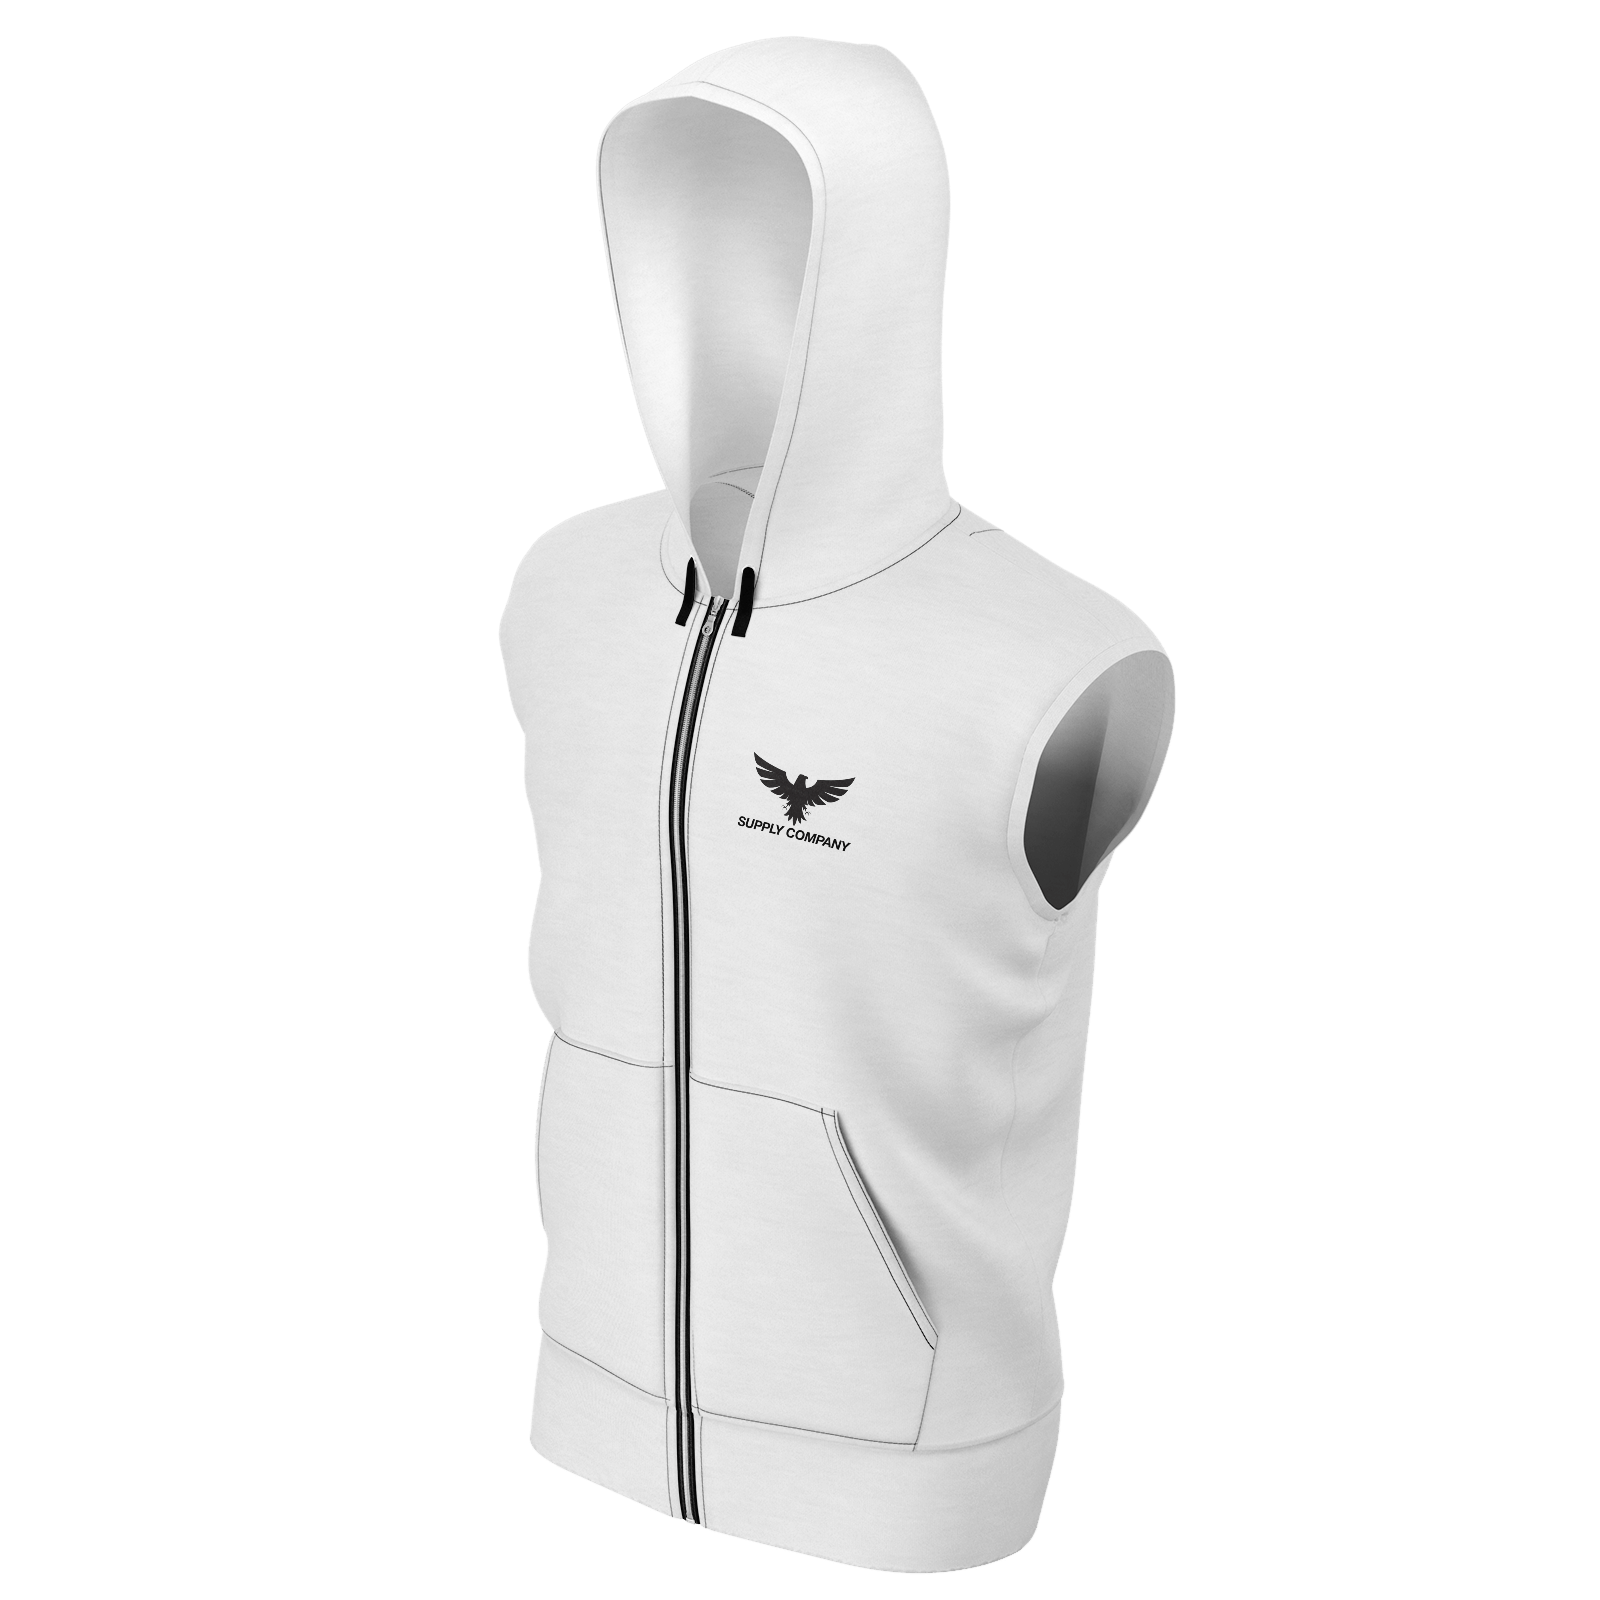 Men's Supply Co. White w/Black Sustainable Sleeveless Zip-Up Hoodie - Find Your Coast Supply Co.